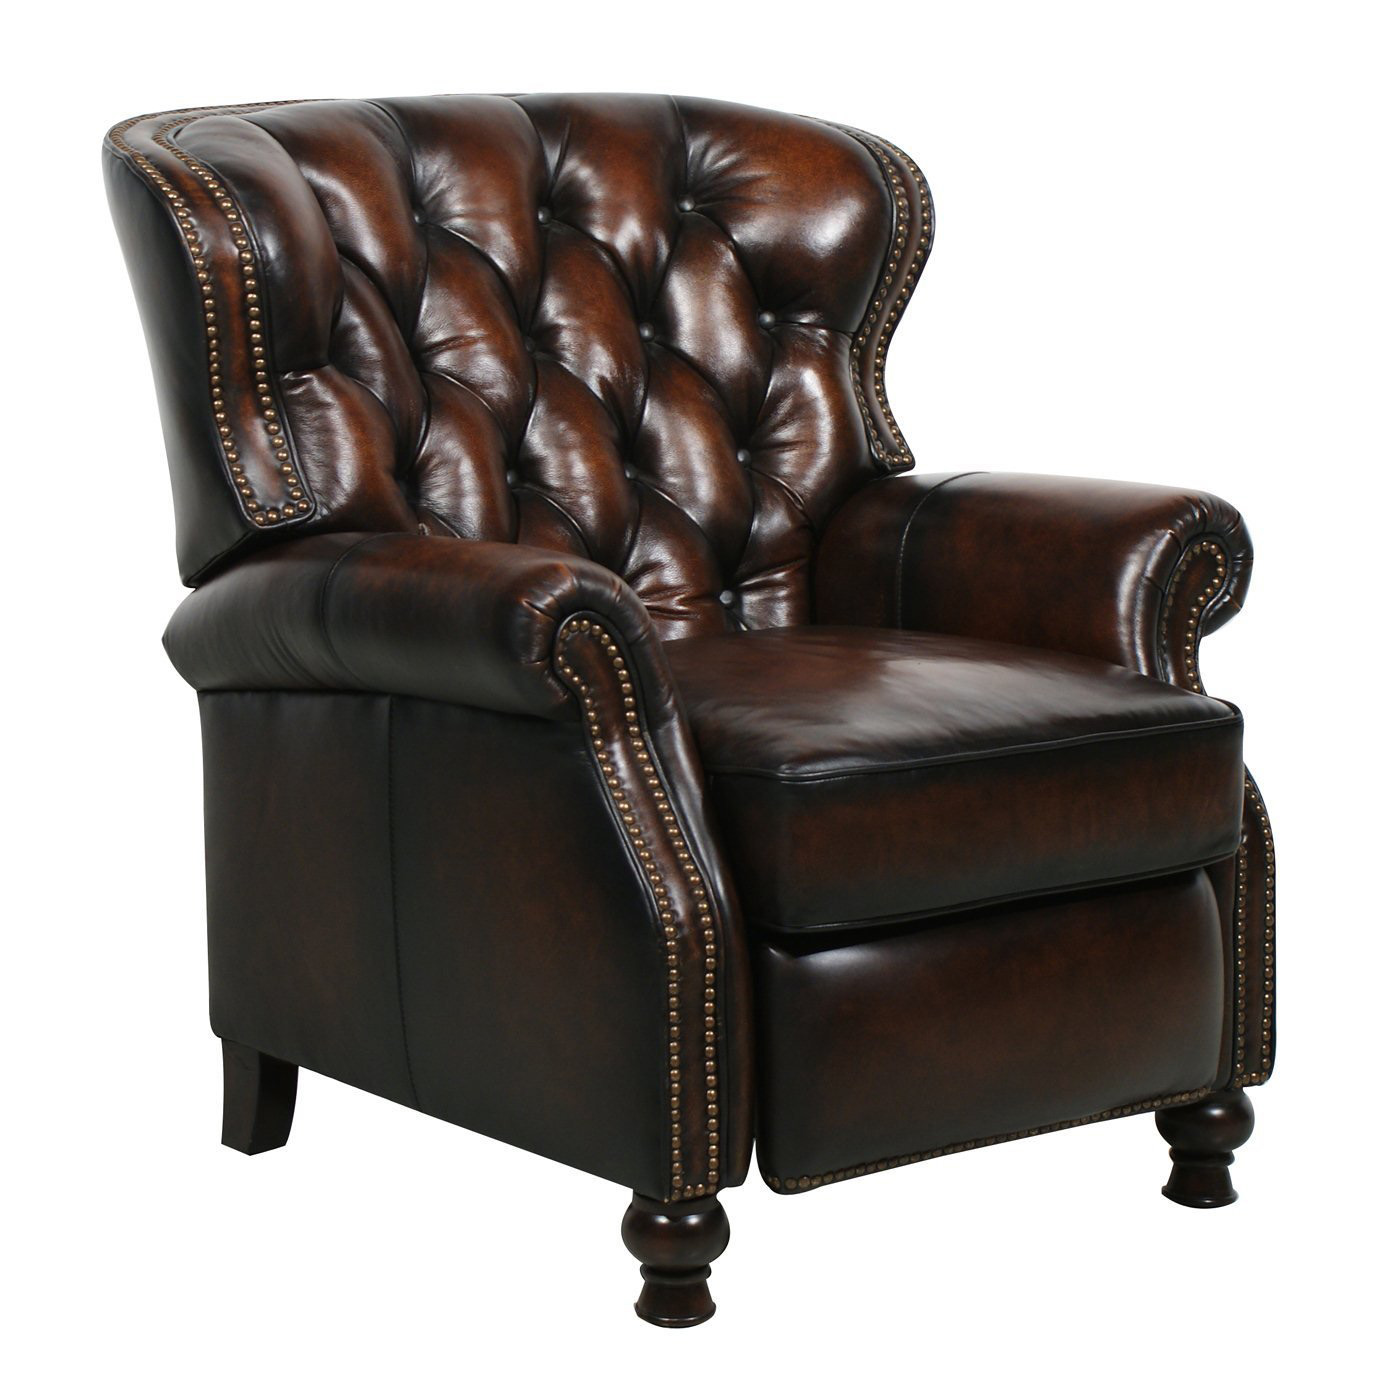 Chair Lounge Barcalounger Presidential Ii Leather Recliner Chair